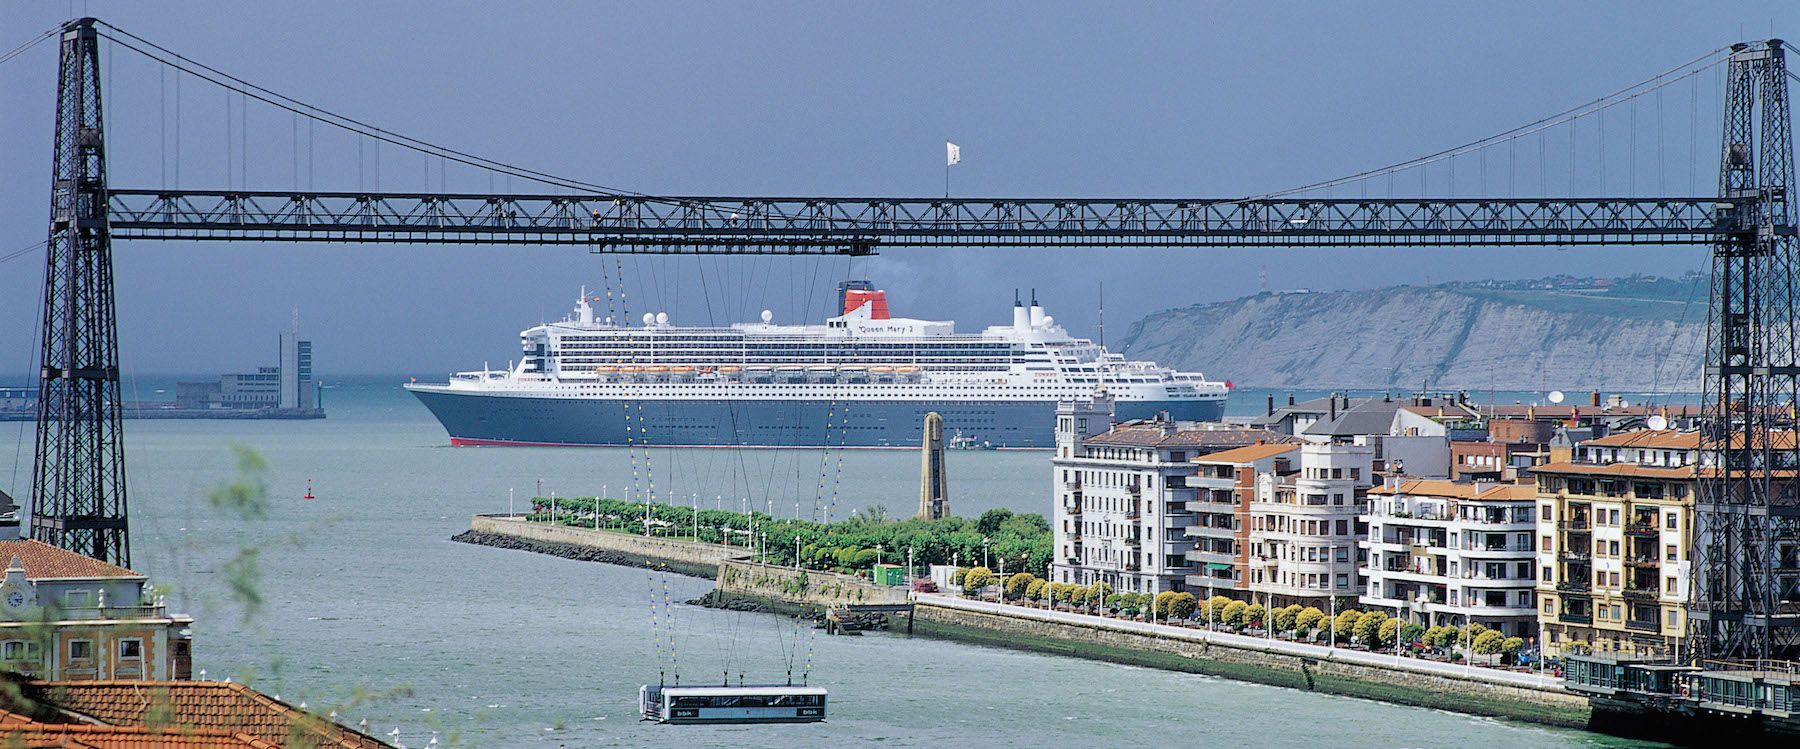 Queen Mary 2 at Port of Bilbao